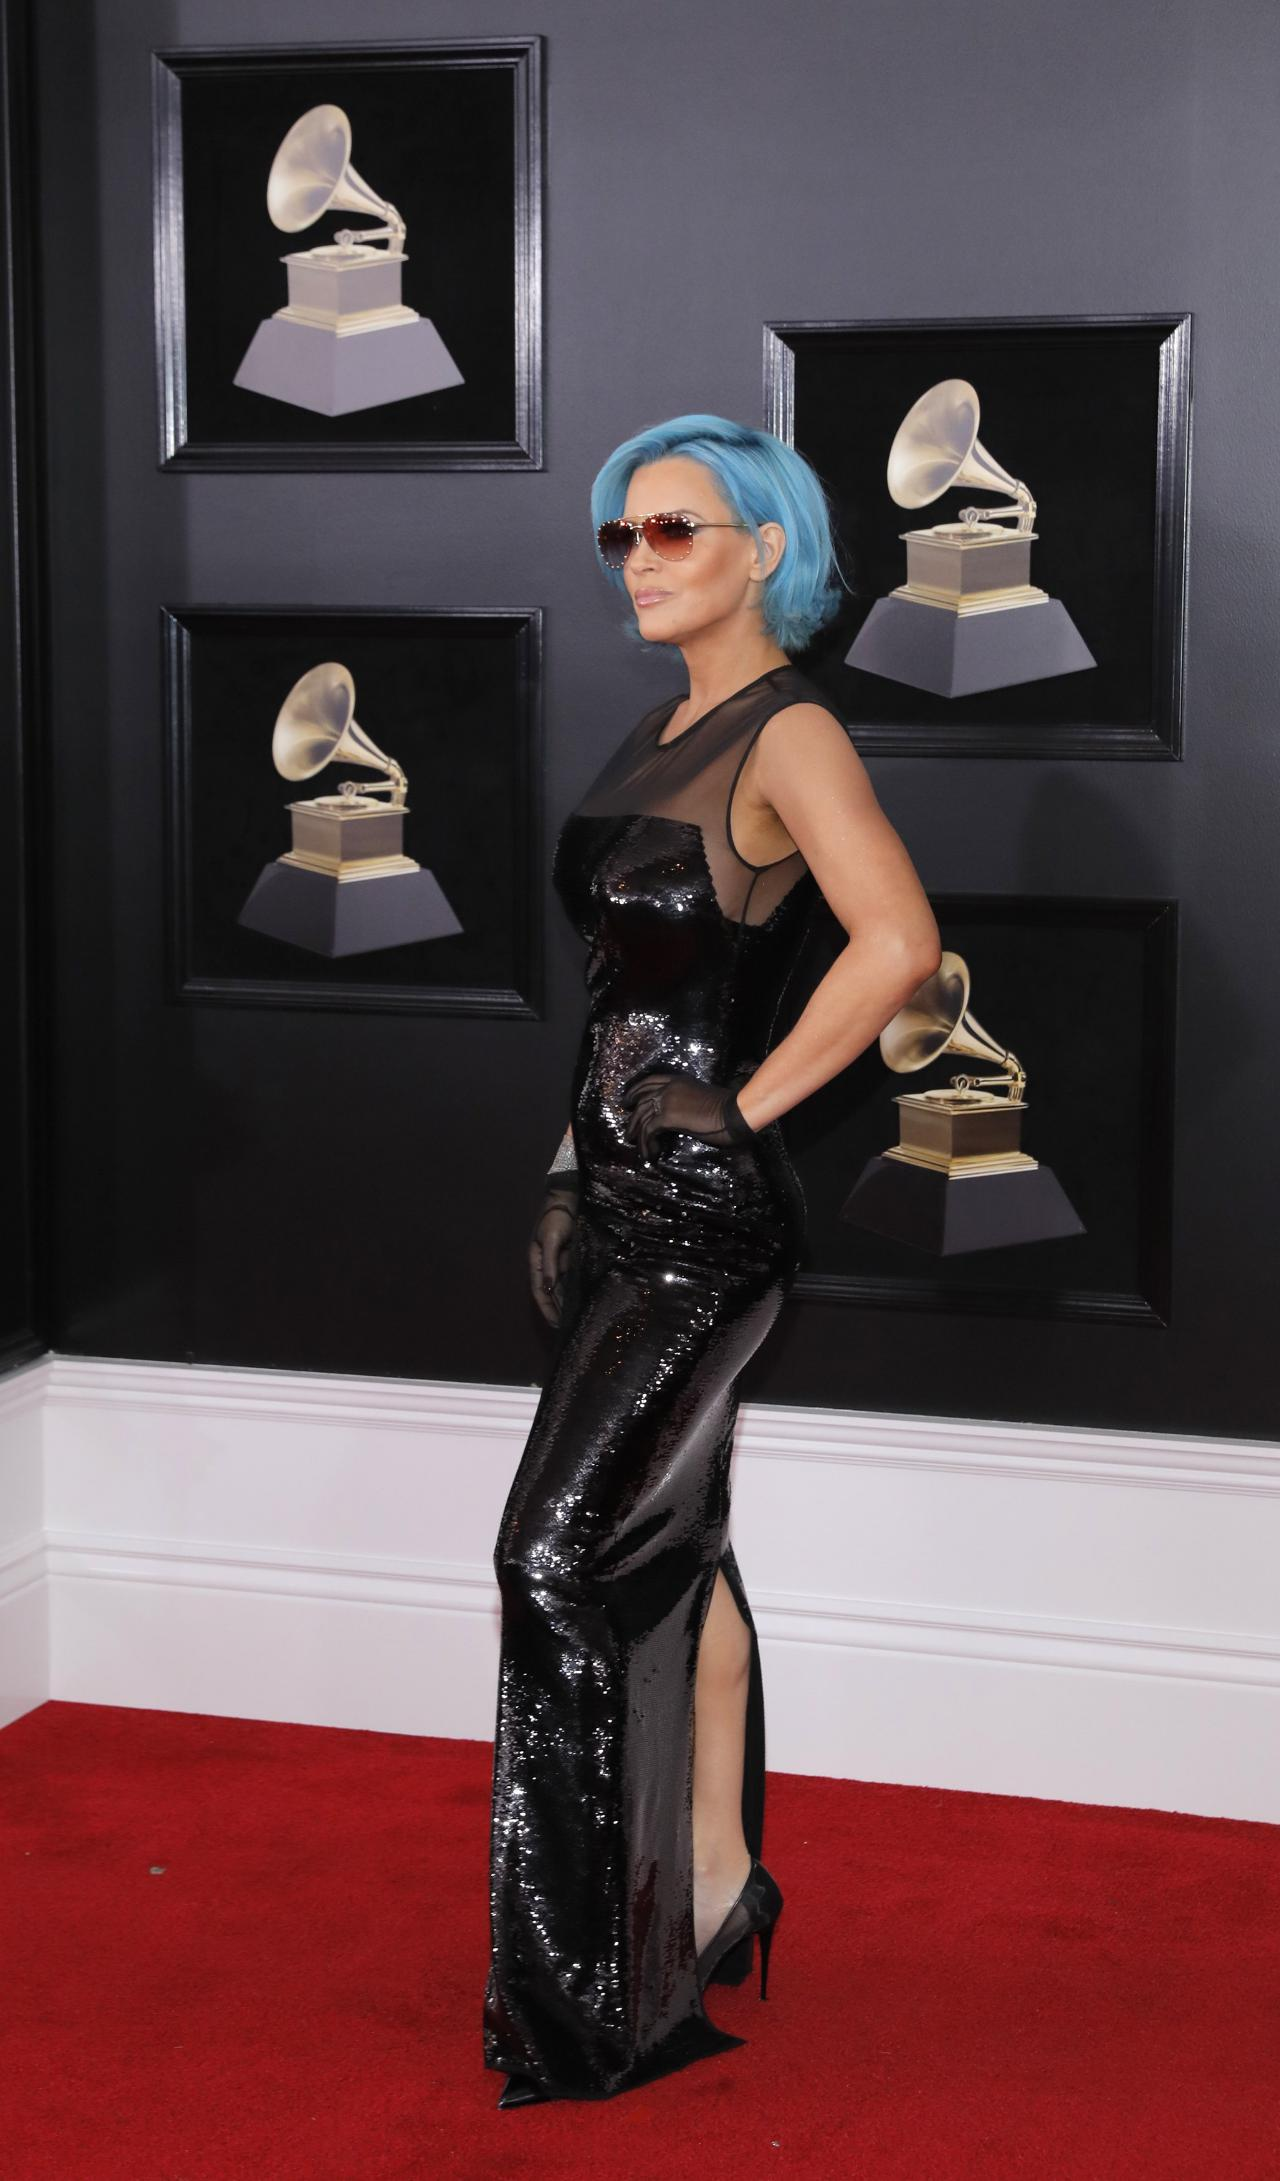 2018-01-28T232758Z_1106064187_HP1EE1S1T6LVU_RTRMADP_3_AWARDS-GRAMMYS_resized